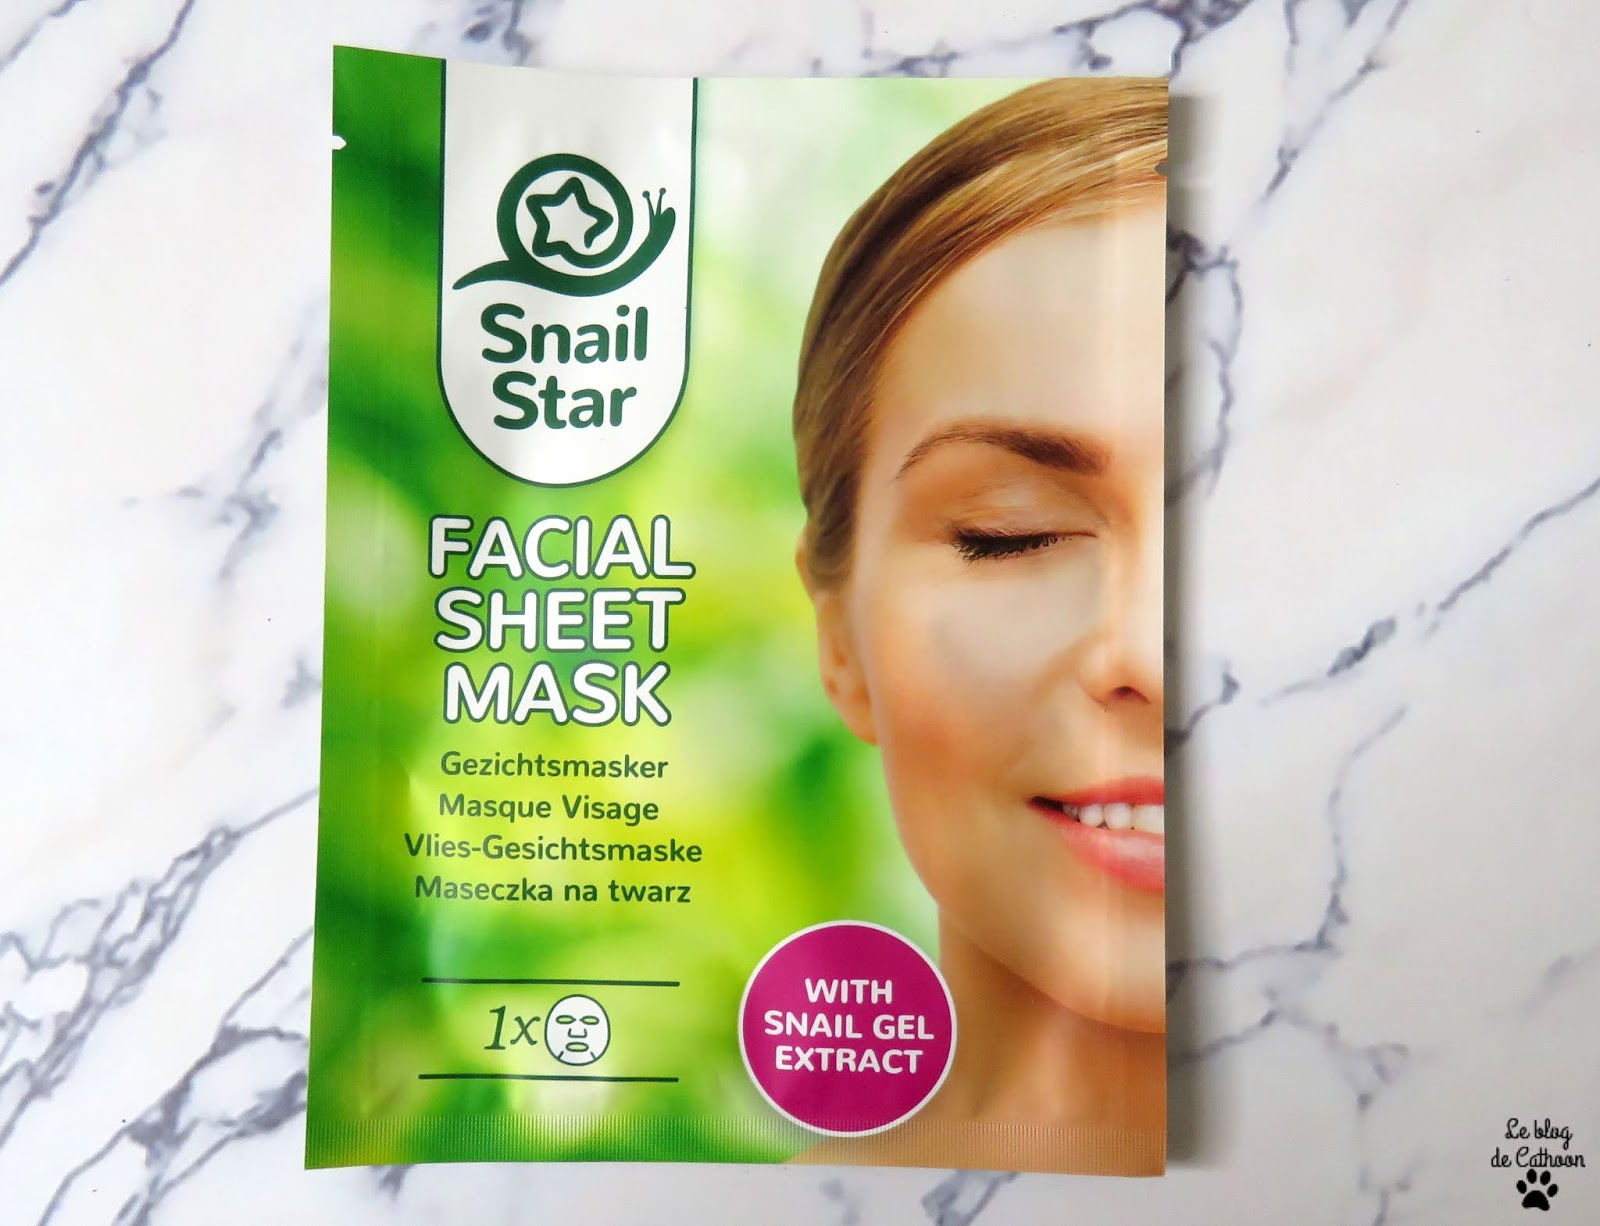 Snail Star - Facial Sheet Mask - Action